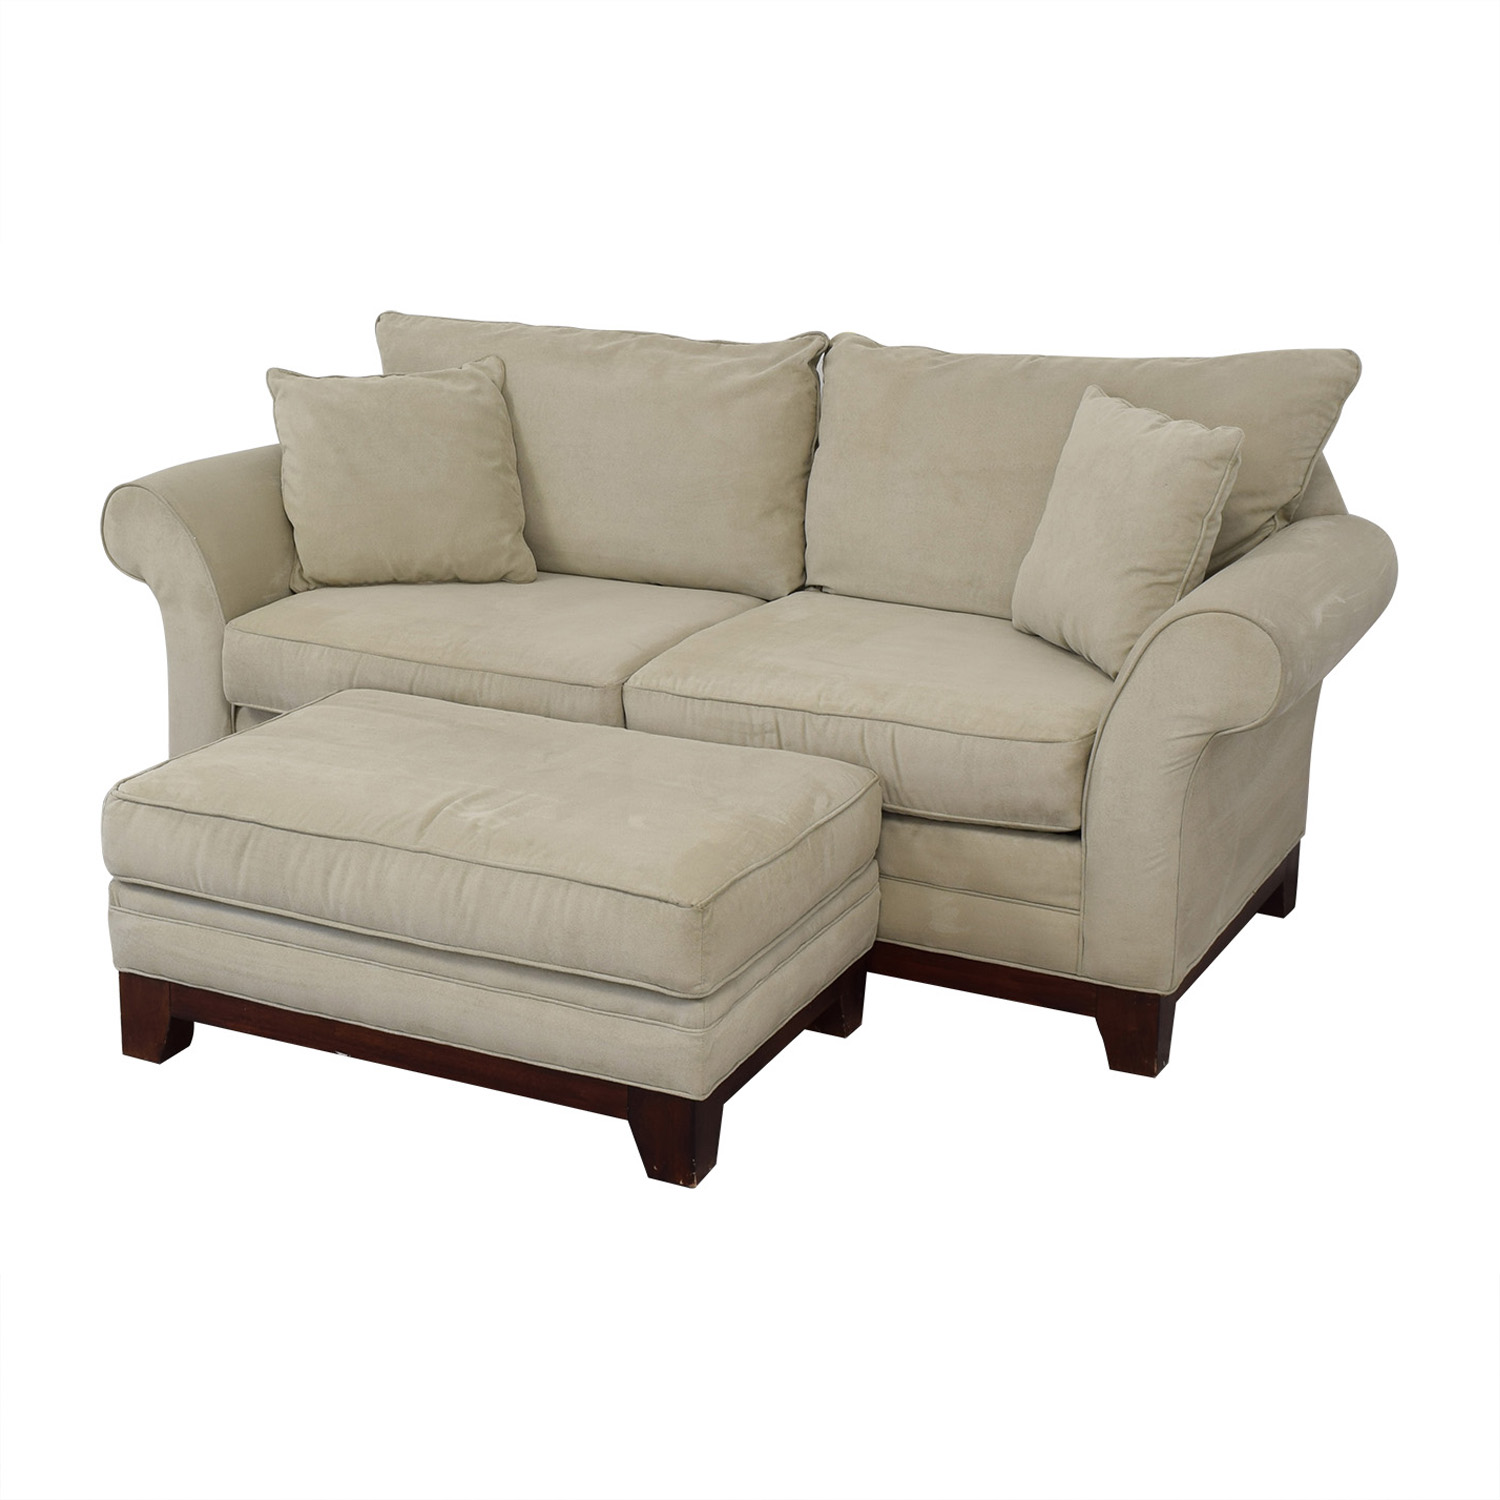 Craftmaster Furniture Craftmaster Furniture Microsuede Couch and Ottoman nyc